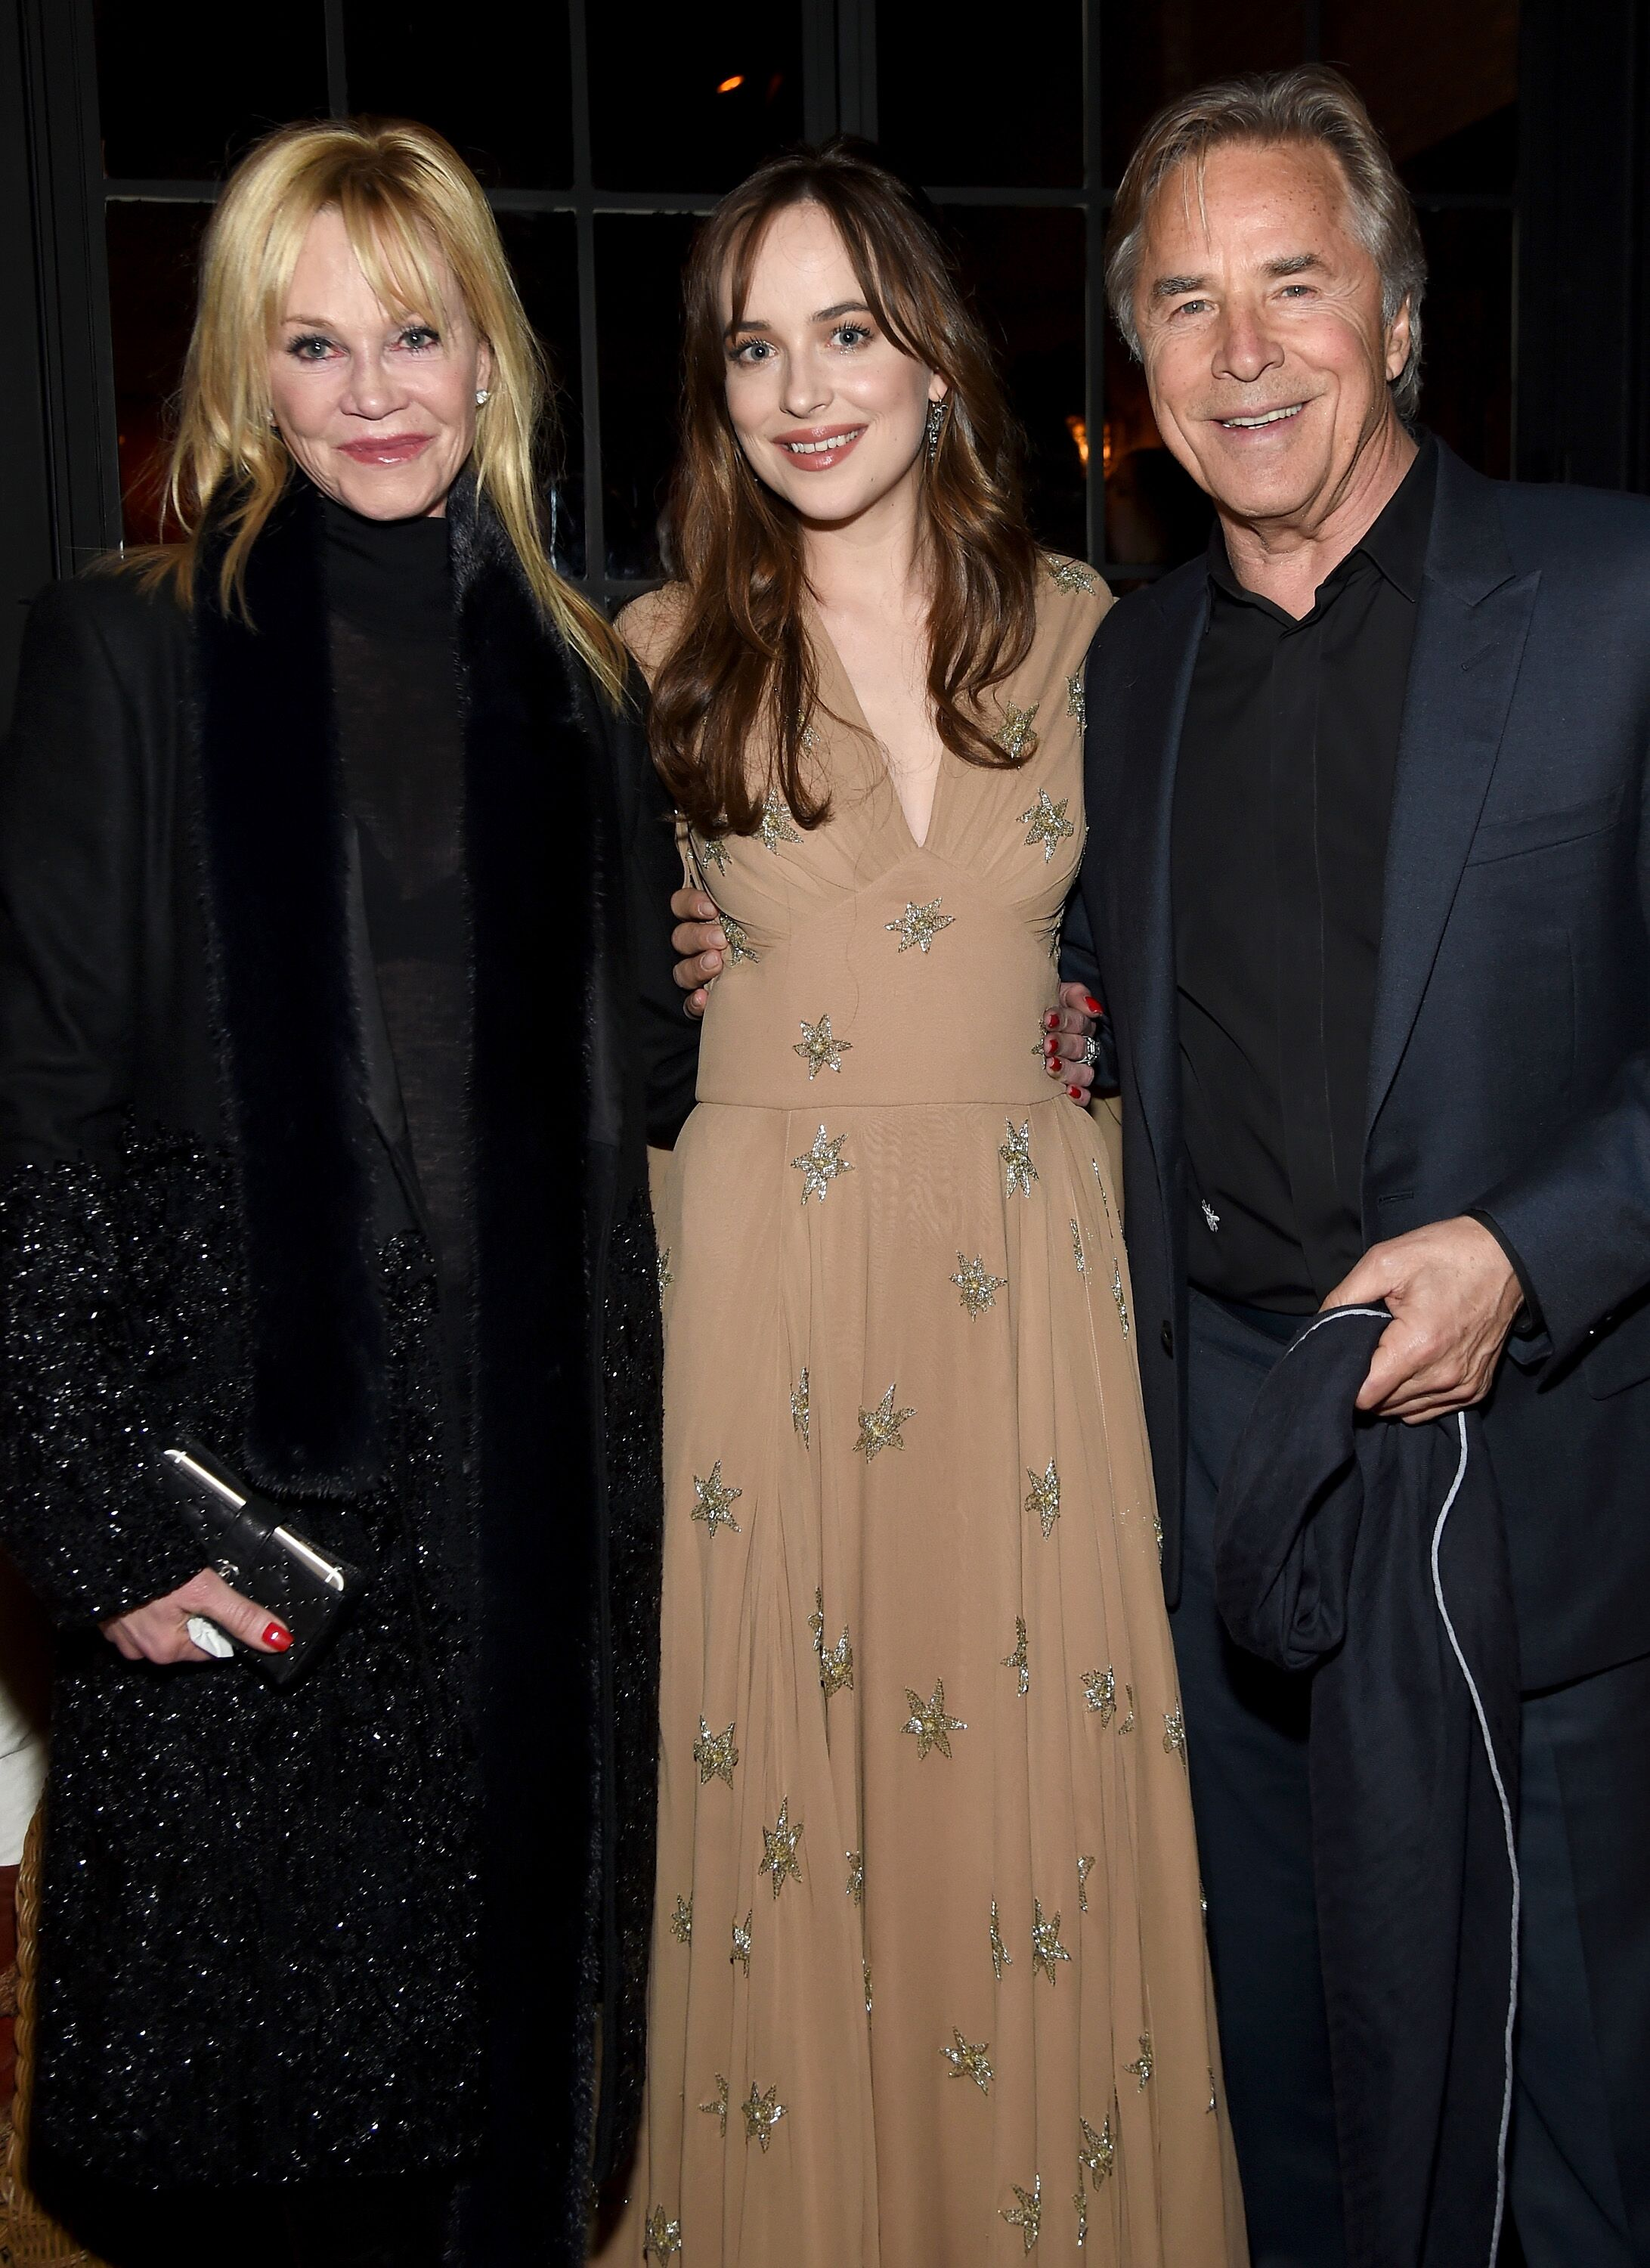 """: Melanie Griffith, Dakota Johnson, and Don Johnson attend the after party for the New York premiere of """"How To Be Single"""" in 2016 